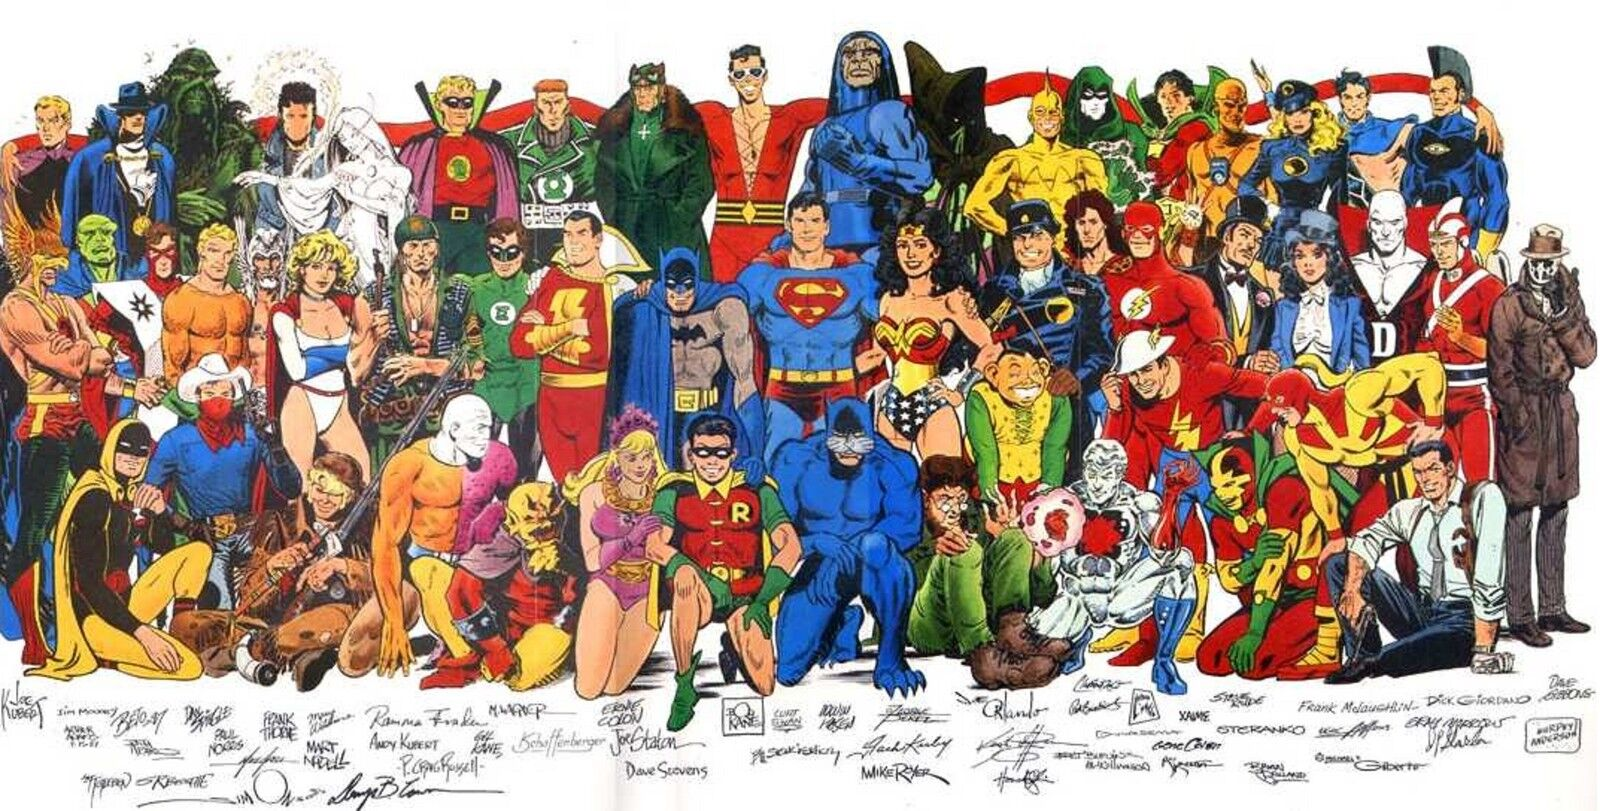 Twicefathered Comics & Collectibles